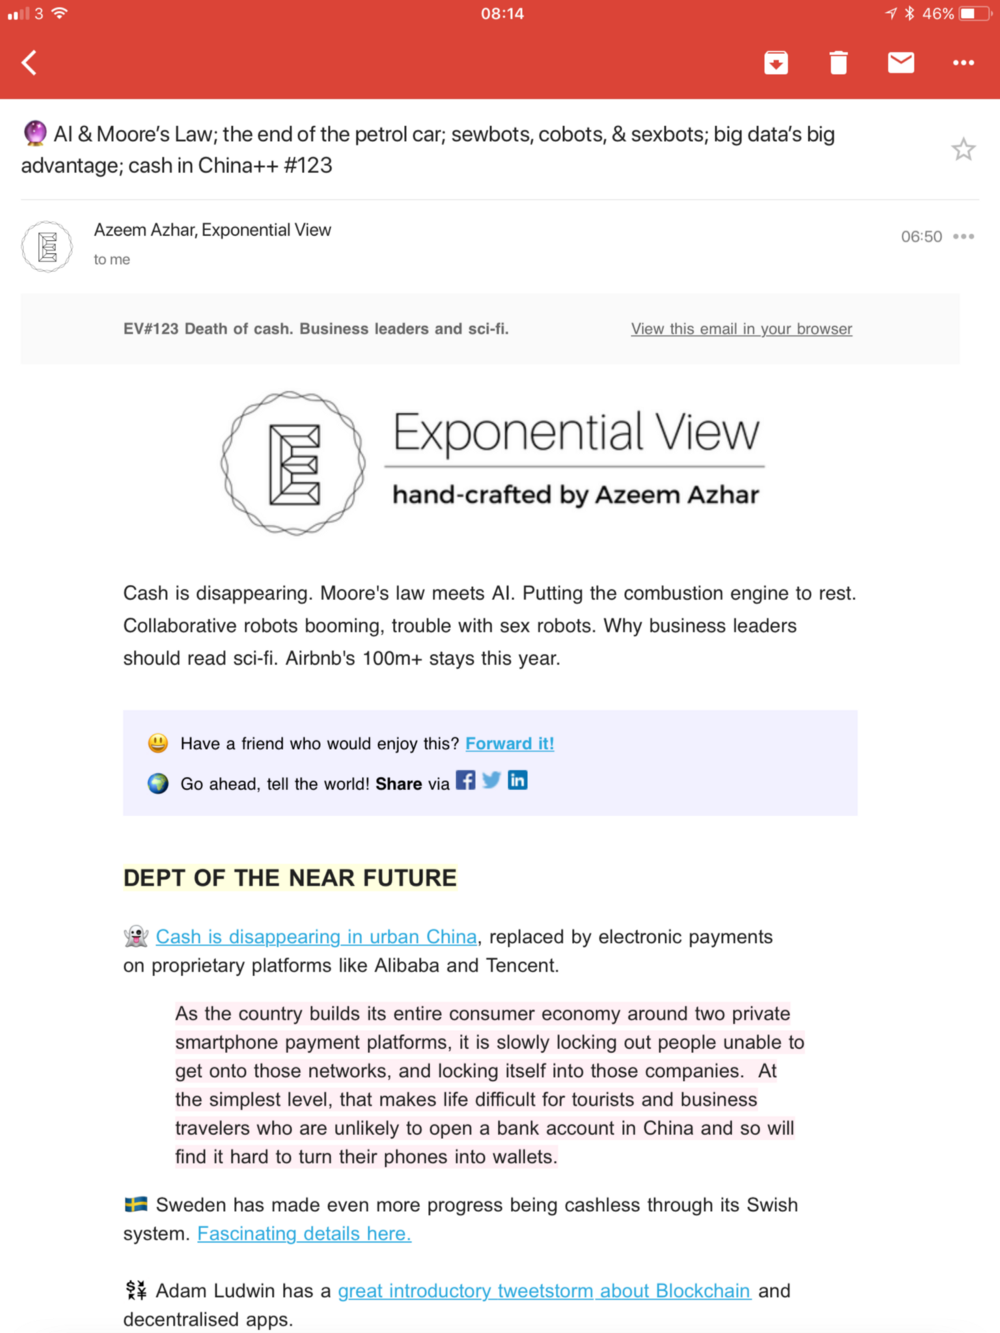 Essential reading: my top three email newsletters - Andrew Besford